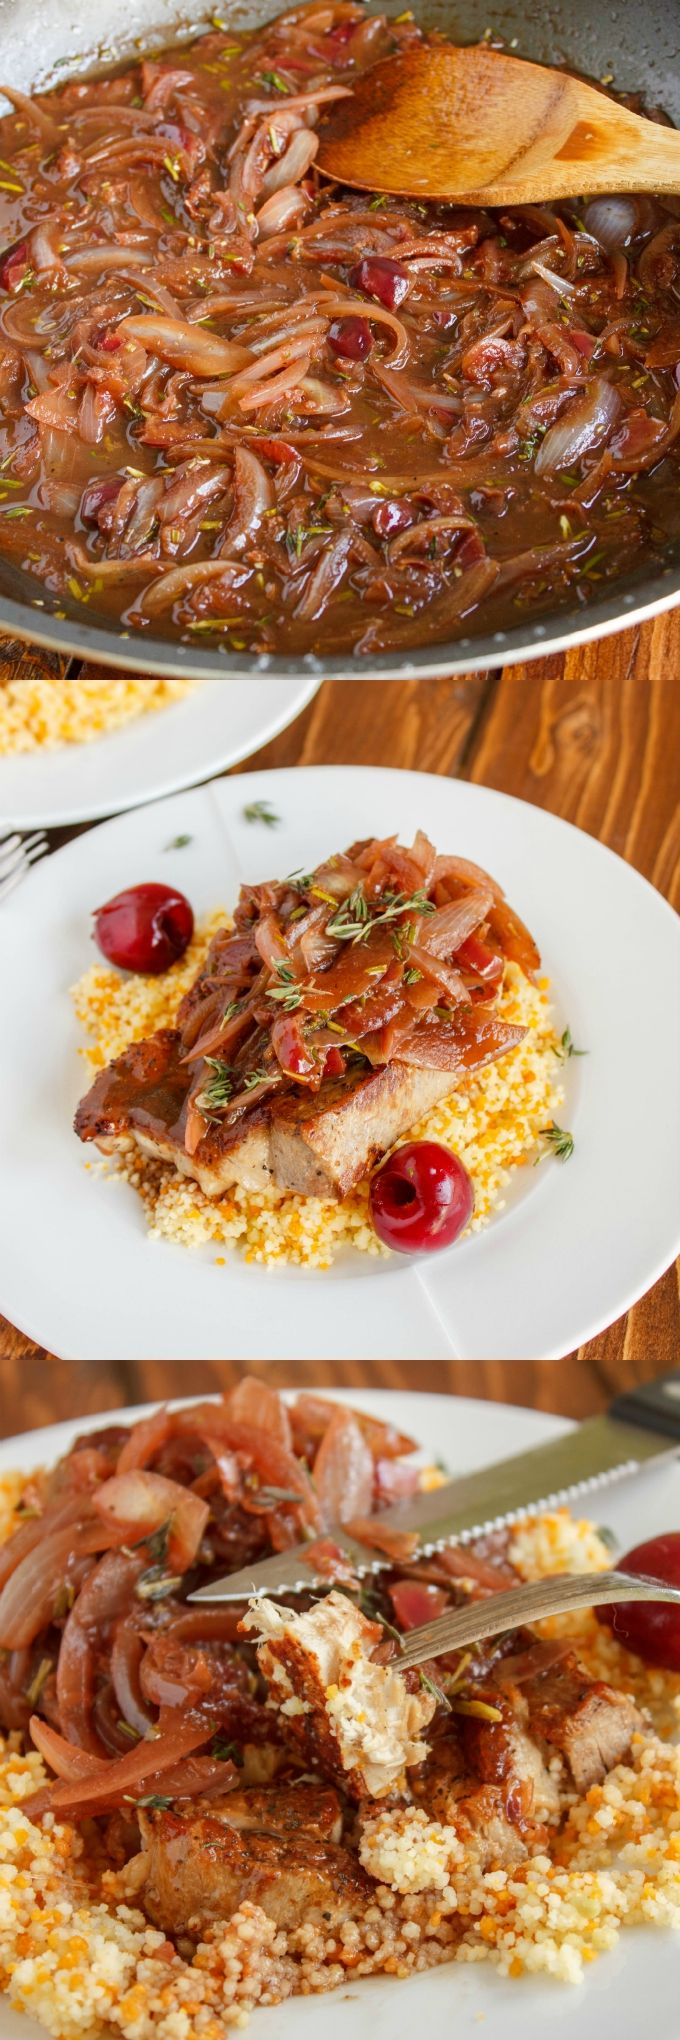 Pan-Fried Pork Chops with a Cherry and Onion Sauce 1